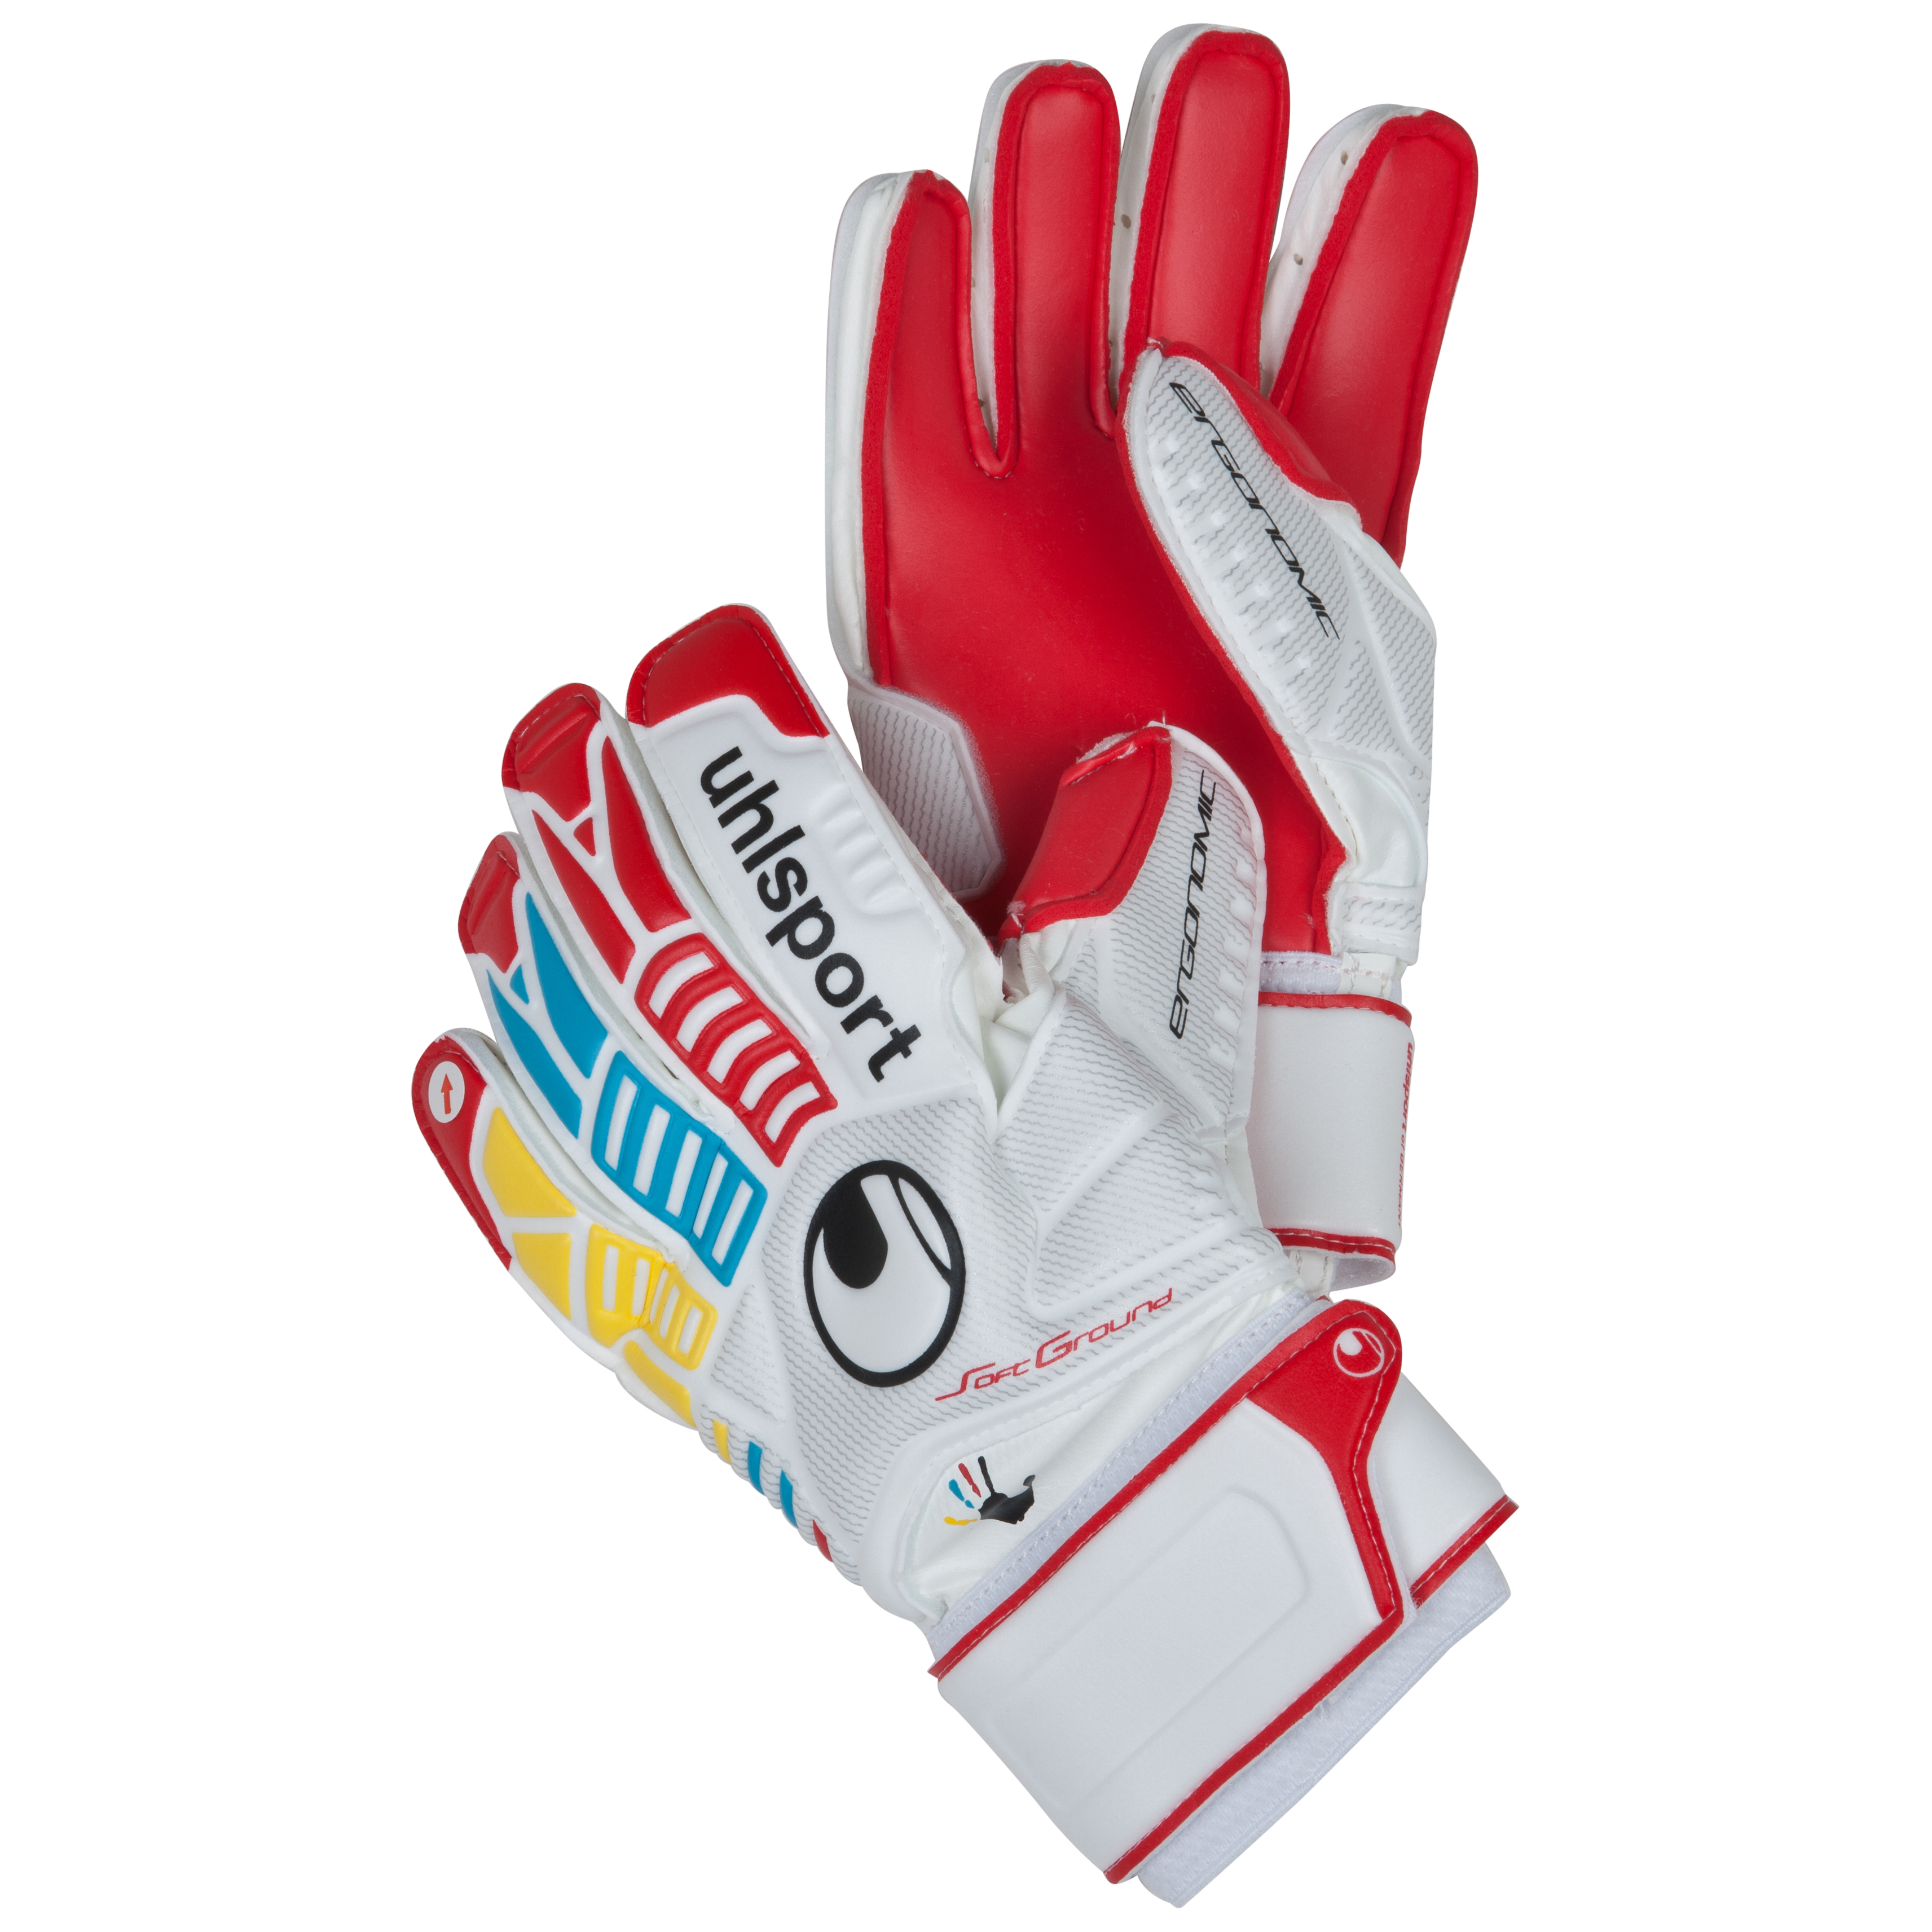 Uhlsport Ergonomic Soft 'Wir Tun Was' Goalkeeper Gloves - White/Red/Yellow/Cyan - Kids